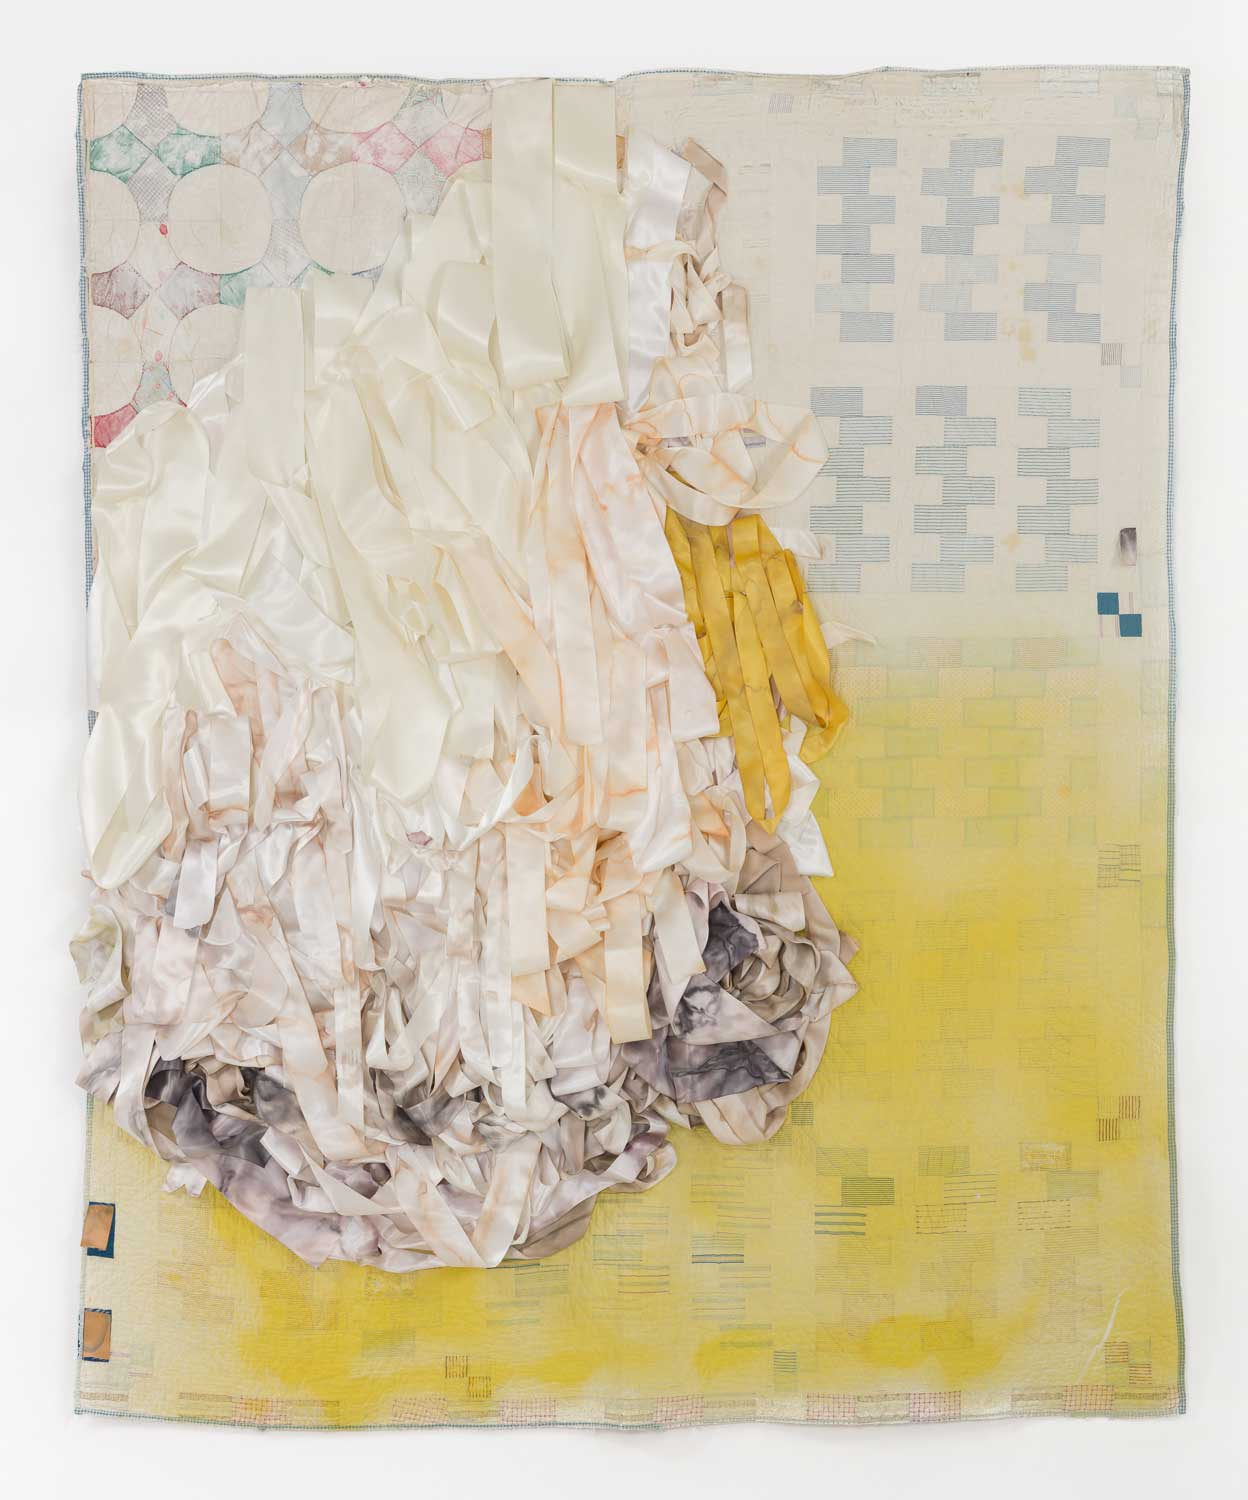 "Place Heirloom 1, Sunrises and Lakes, ""We All go home eventually."", 78 x 66 inches, hand-stitched quilts, ribbon, fabric dye, mixed media, 2017"